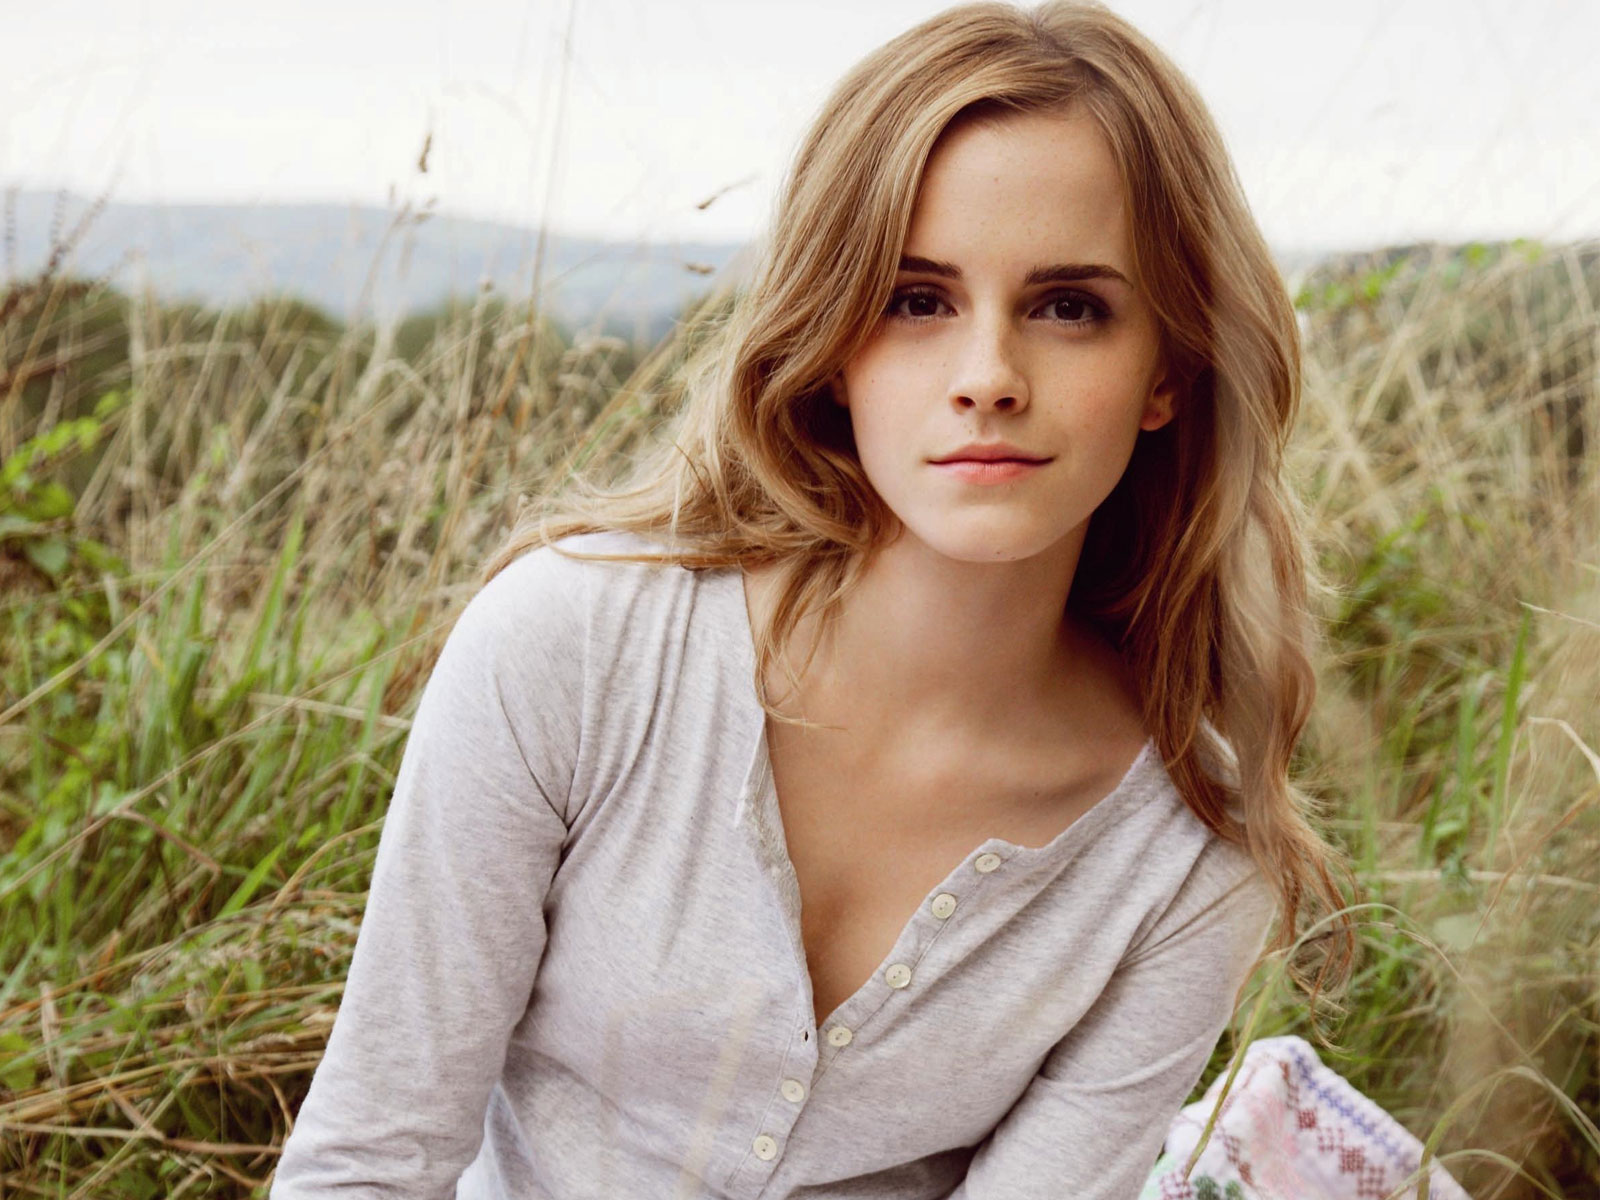 wonderful emma watson beauty stylish look with natural background still desktop hd mobile free wallpaper